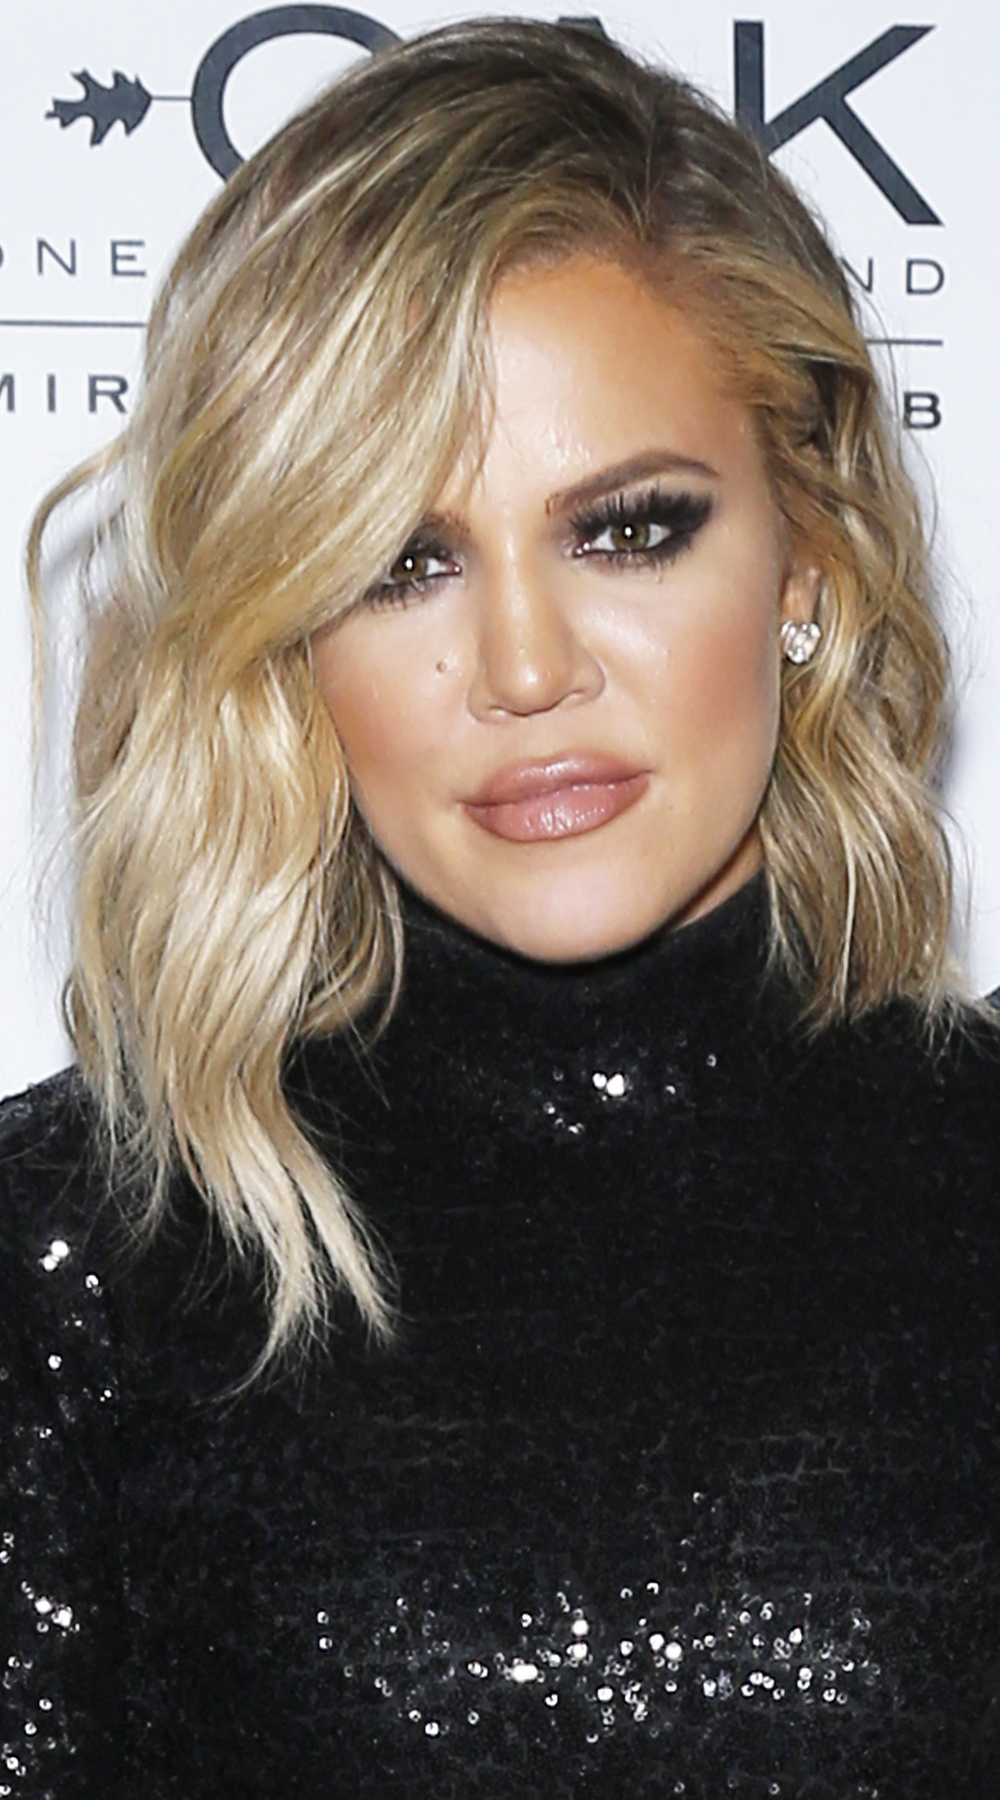 khloe kardashian - photo #12